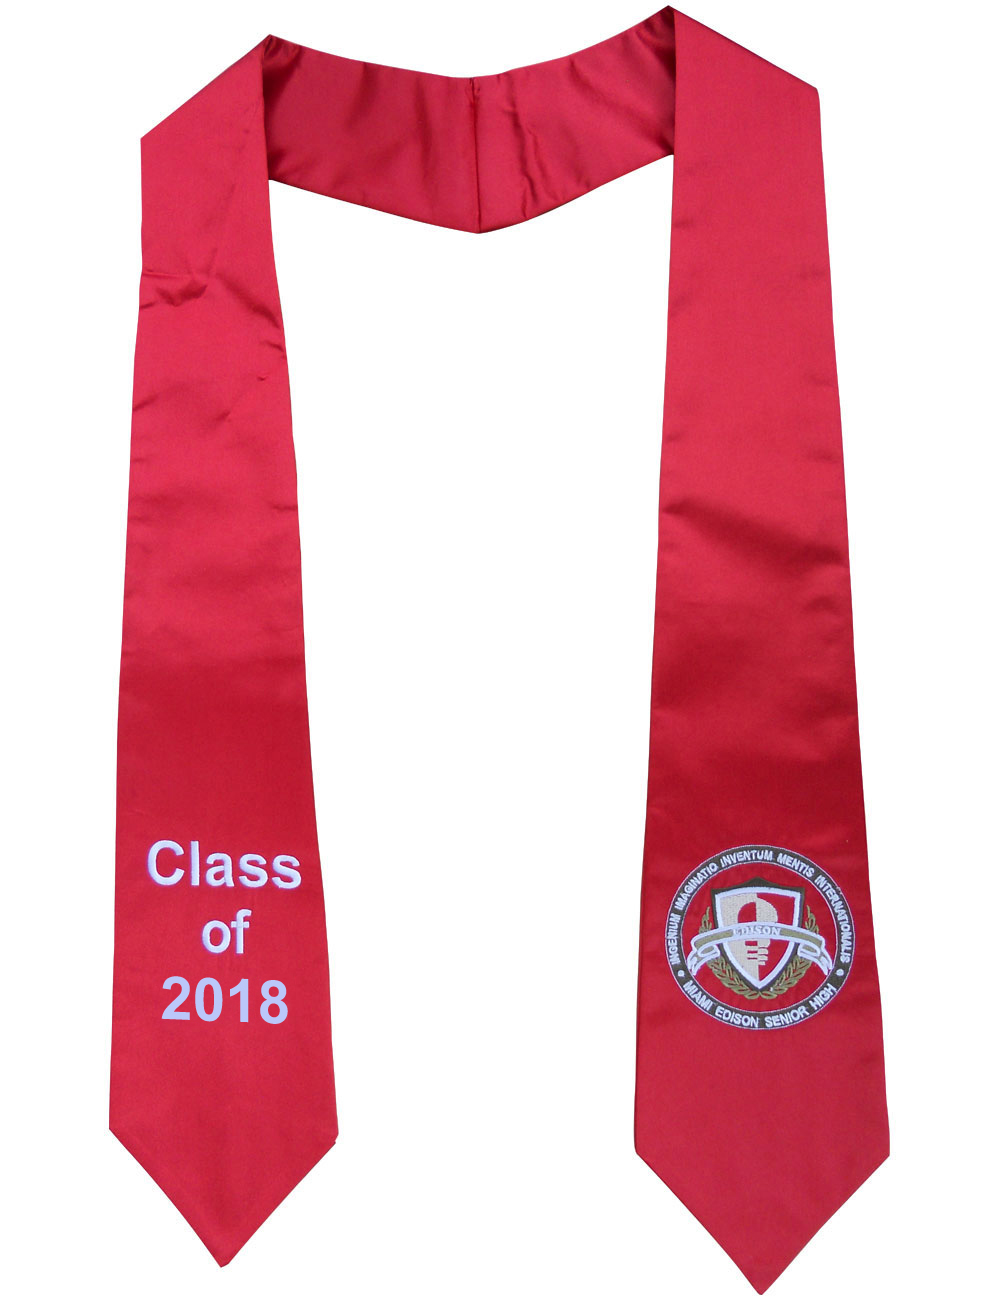 Graduation Stoles - 100% Polyester Satin Fabric